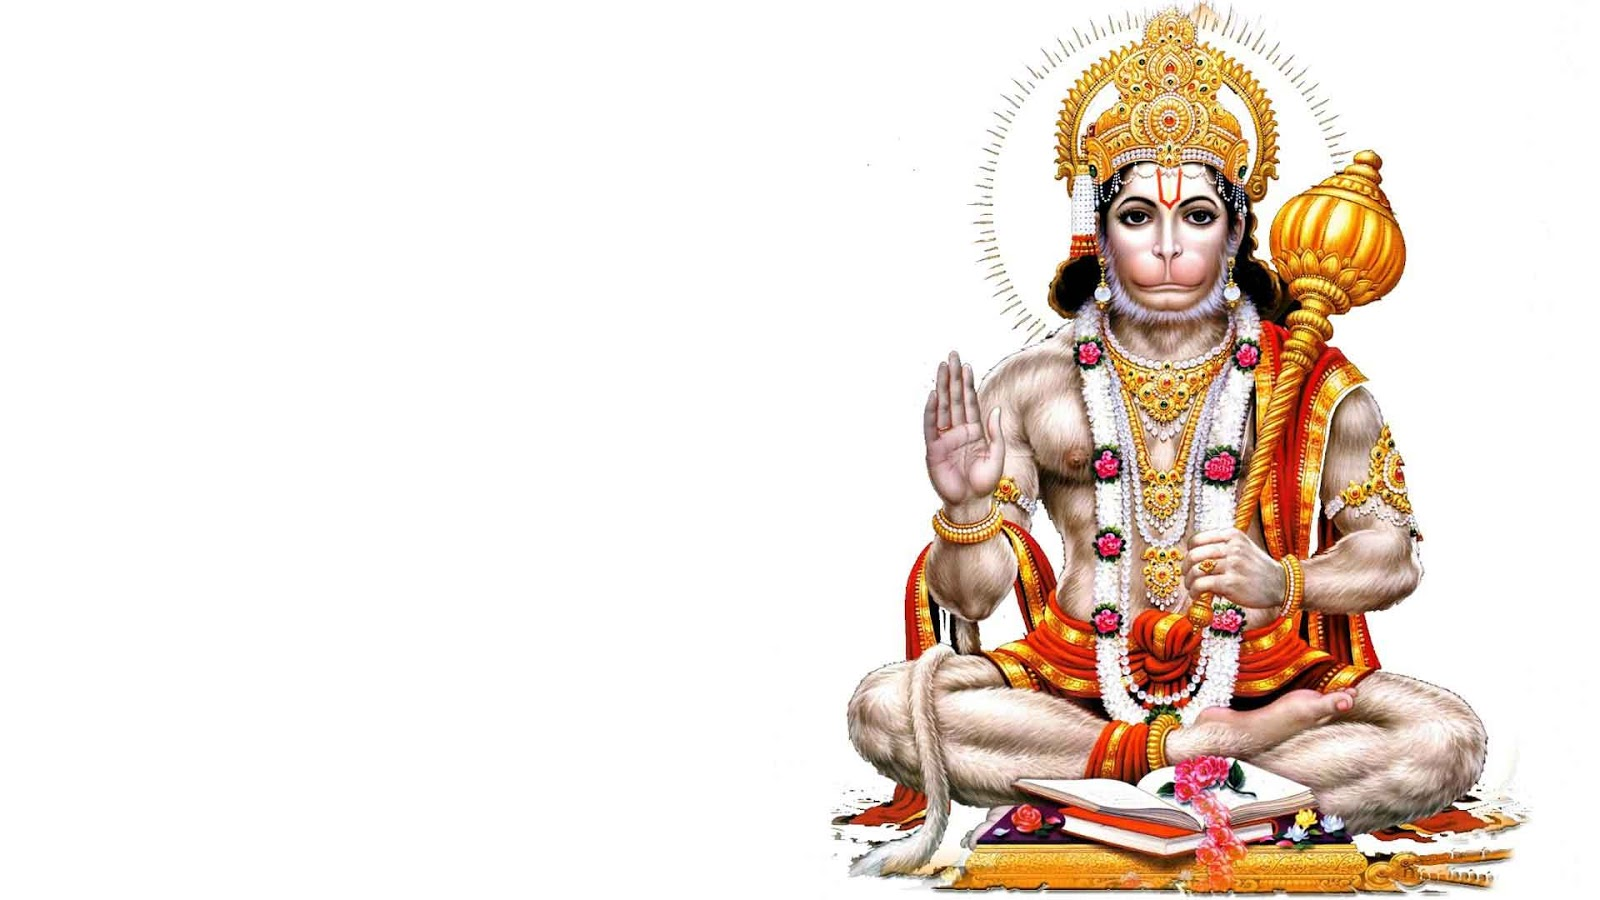 the name hanuman essay Ramayana - indian epics and stories ram is the 7th incarnation of vishnu and the central figure of the ramayana (ramayan) epic the ramayan is the very soul of india it is a complete guide to god-realization, the path to which lies in righteousness.